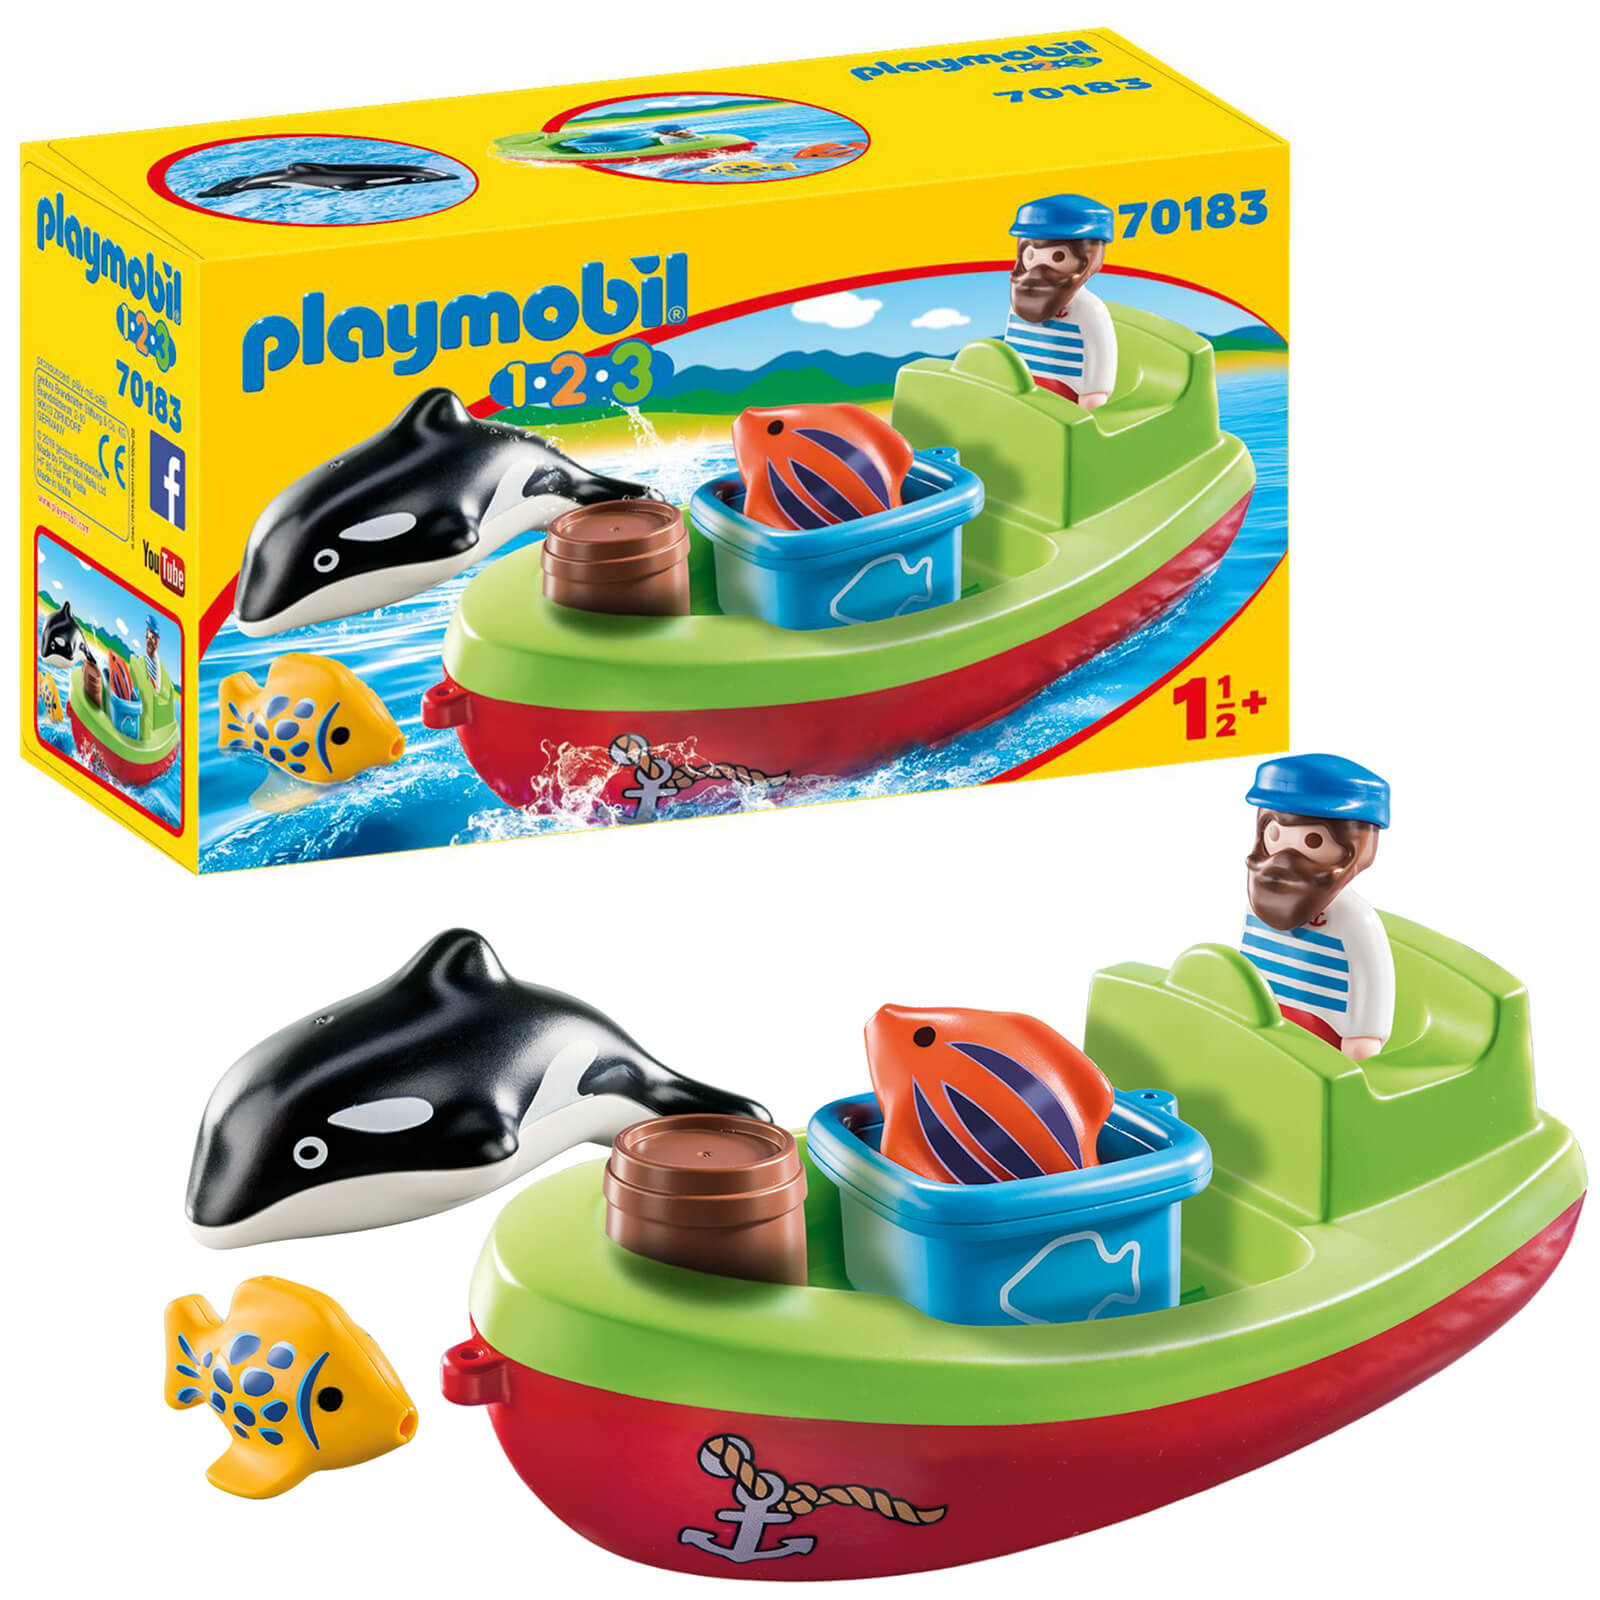 Playmobil 1.2.3 Fisherman With Boat For Children 18 Months+ (70183)